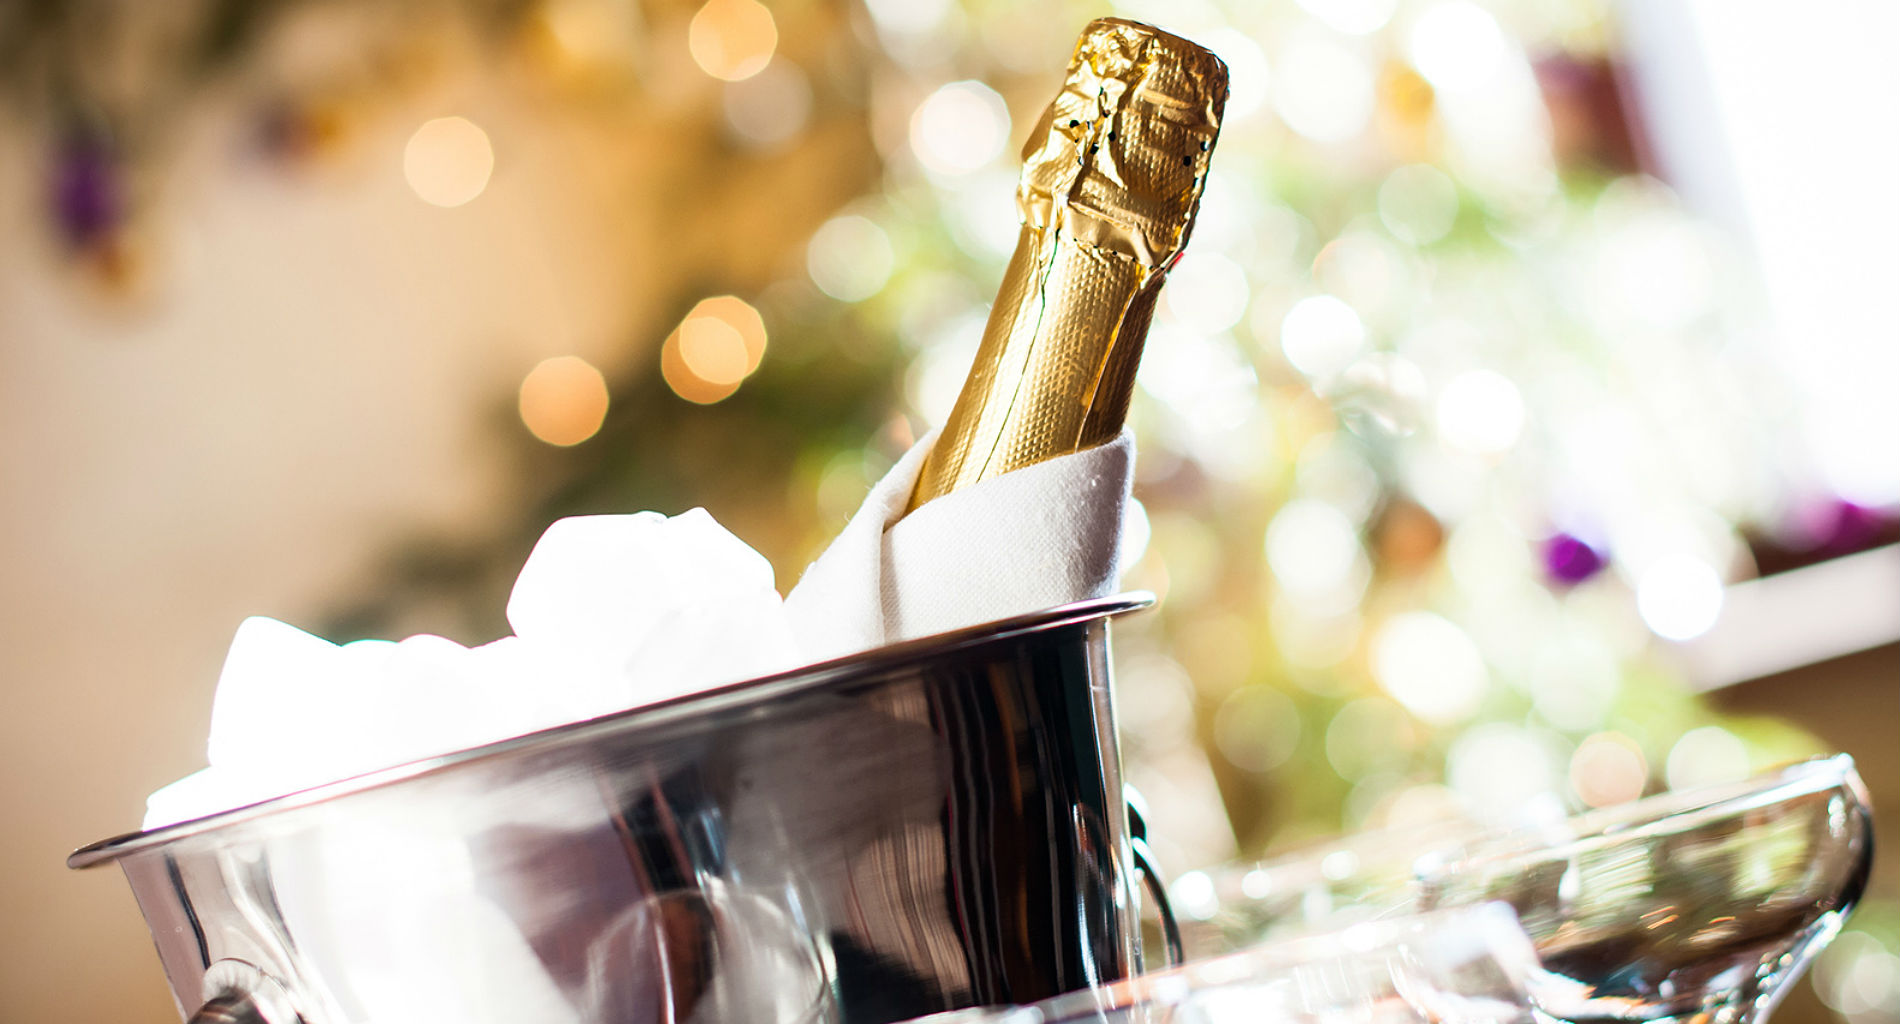 An unopened bottle of champagne wrapped in a white cloth rests in a shiny silver bucket